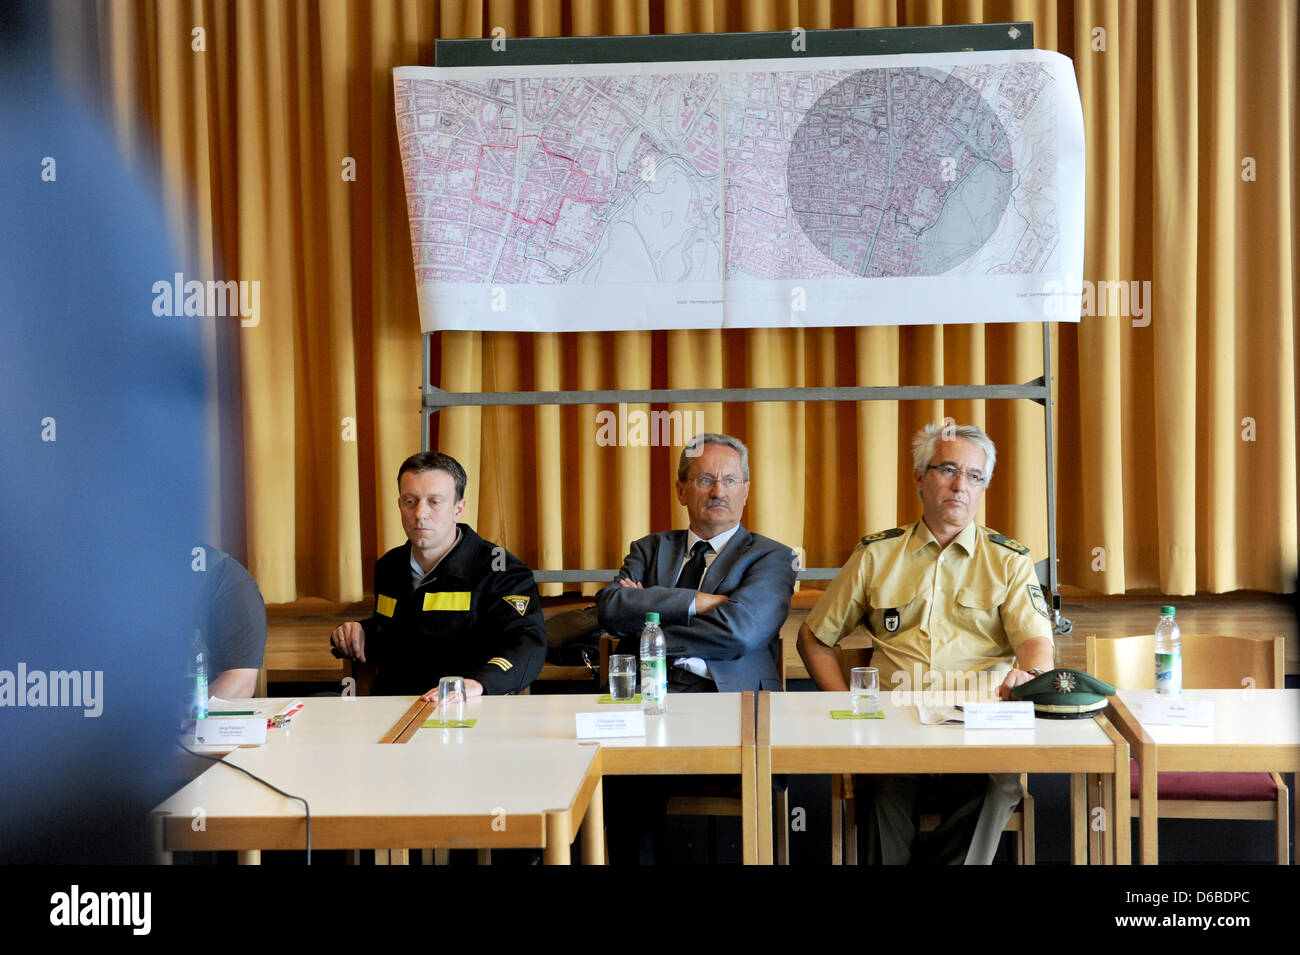 Fire Chief Joerg Fiebach (L-R), Mayor of Munich Christian Ude and Police Chief WilhelmSchmidbauer talk about - Stock Image